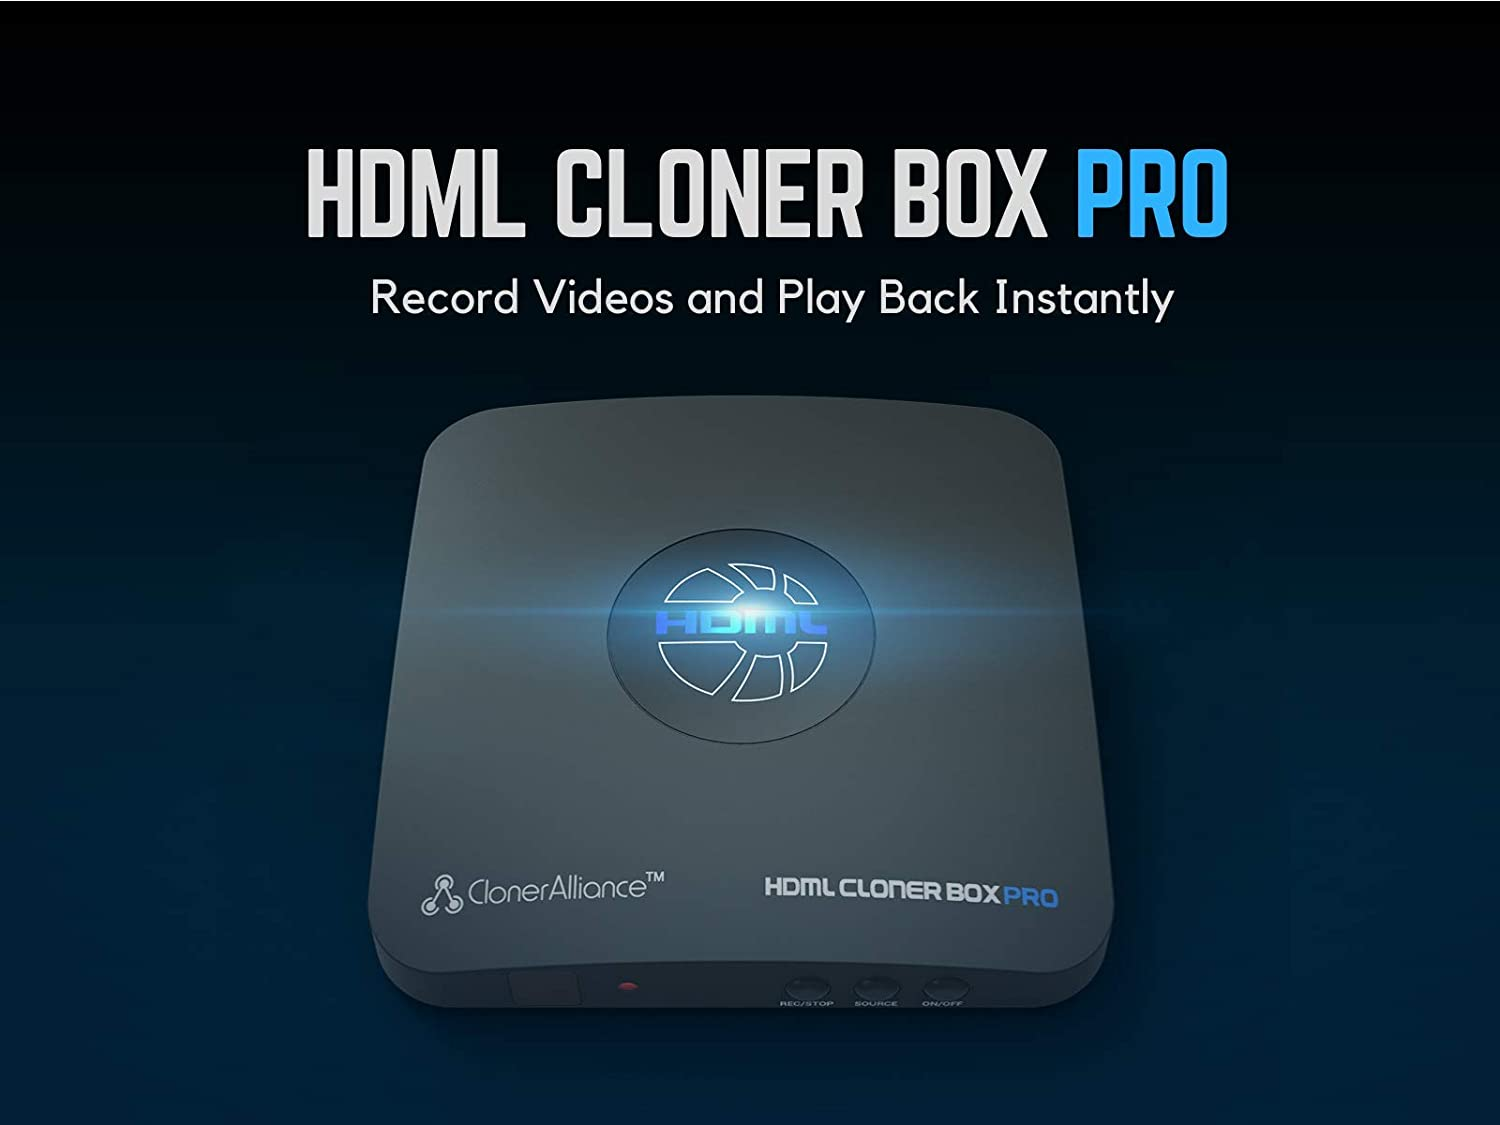 ClonerAlliance HDML-Cloner Box Pro, capture 1080p HDMI videos games and  play back instantly with the remote control, schedule recording,  HDMI VGA AV YPbPr ... b77ebac1ee